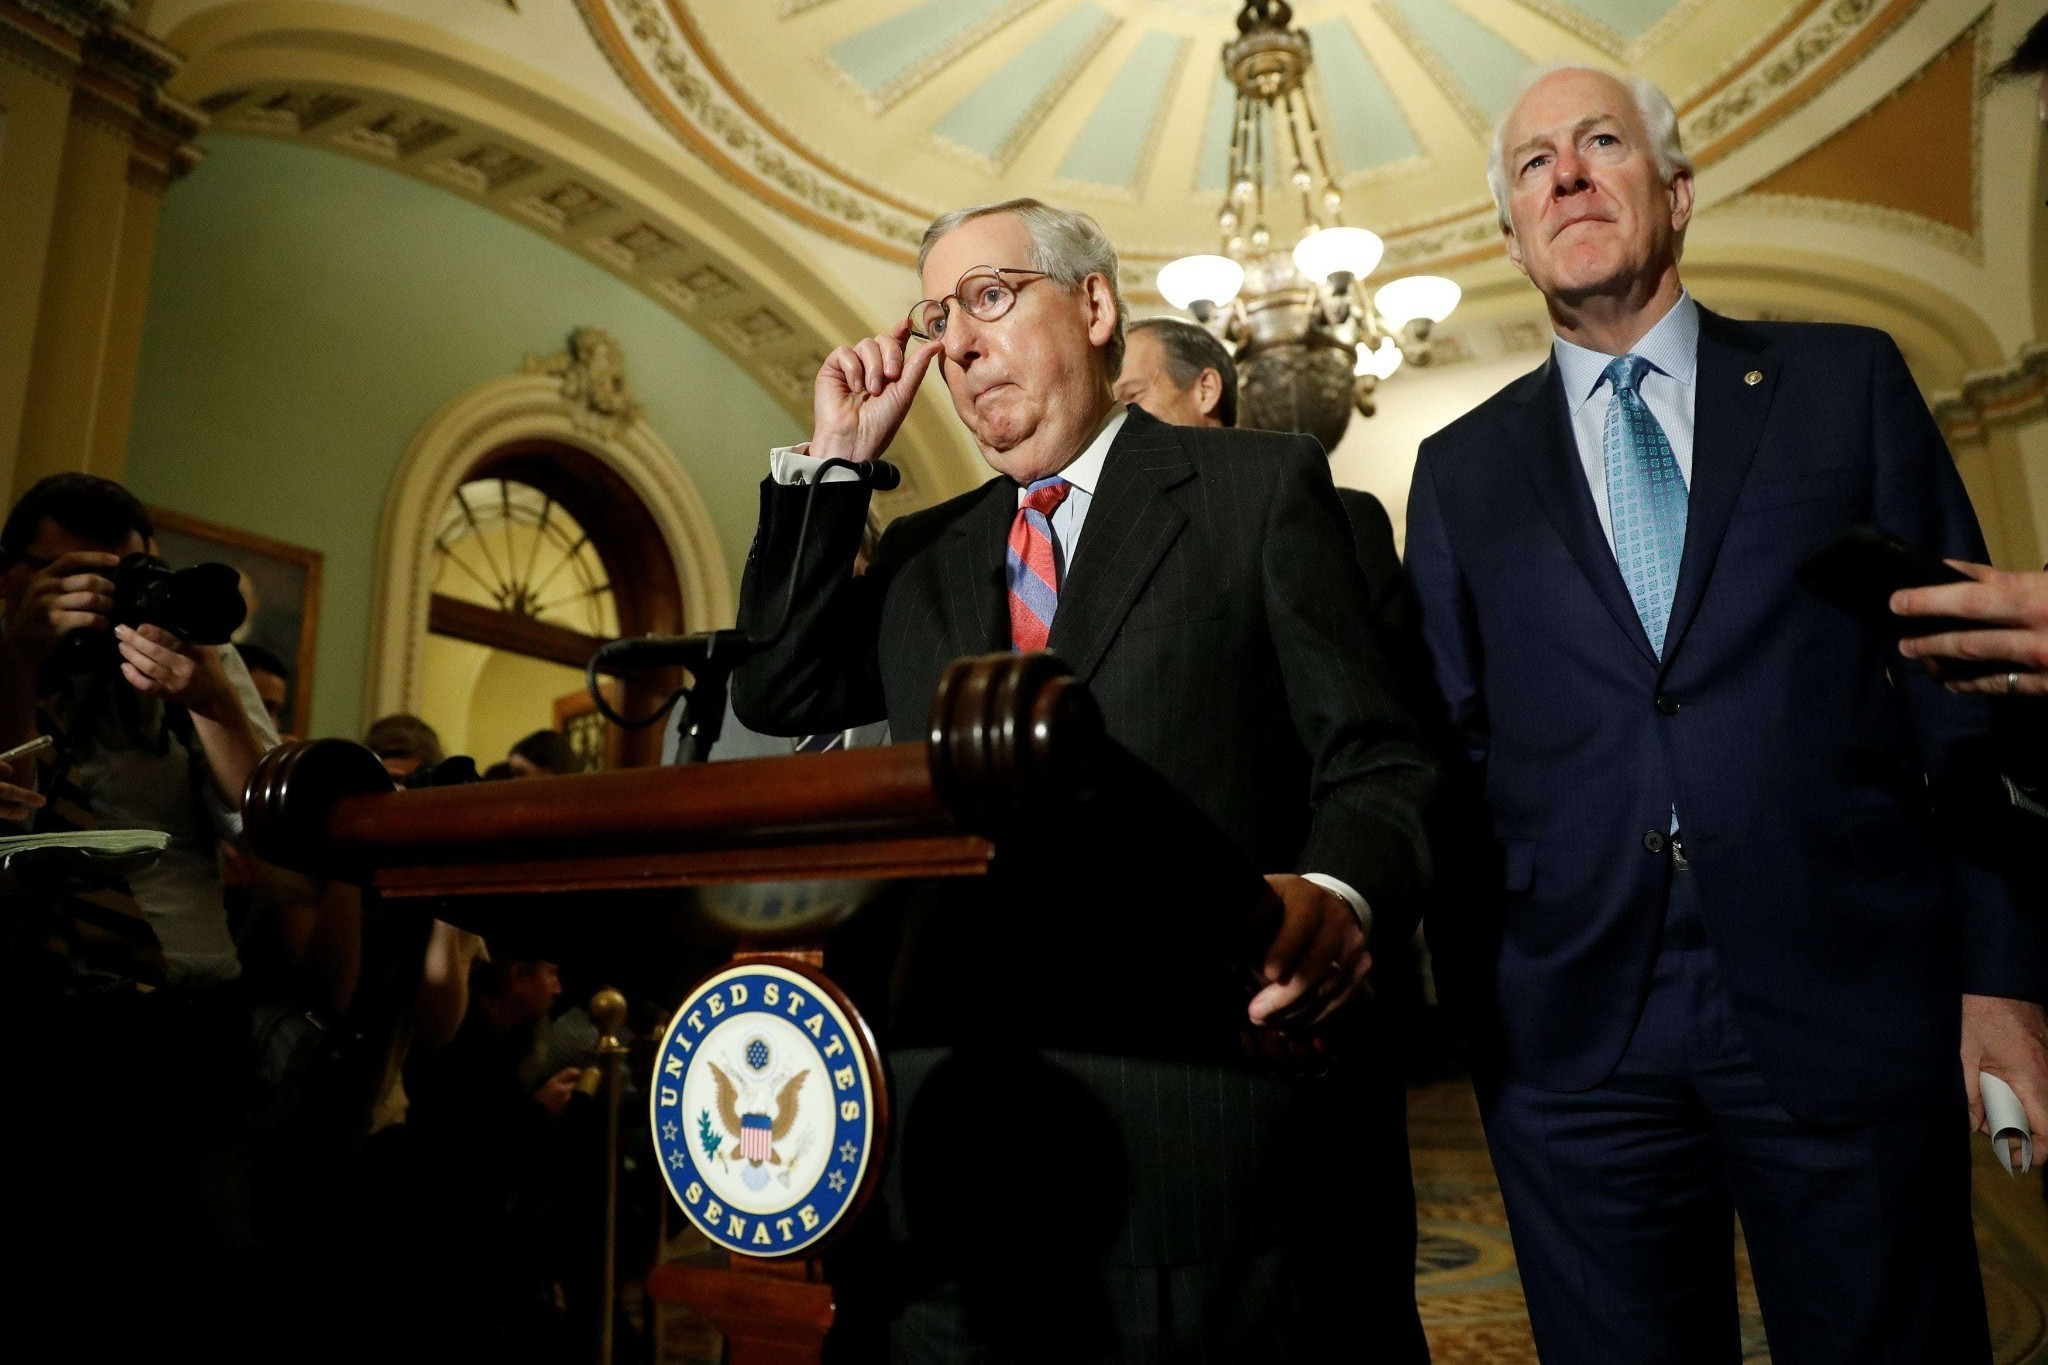 Precision sacrificed for speed as GOP rushes ahead on taxes